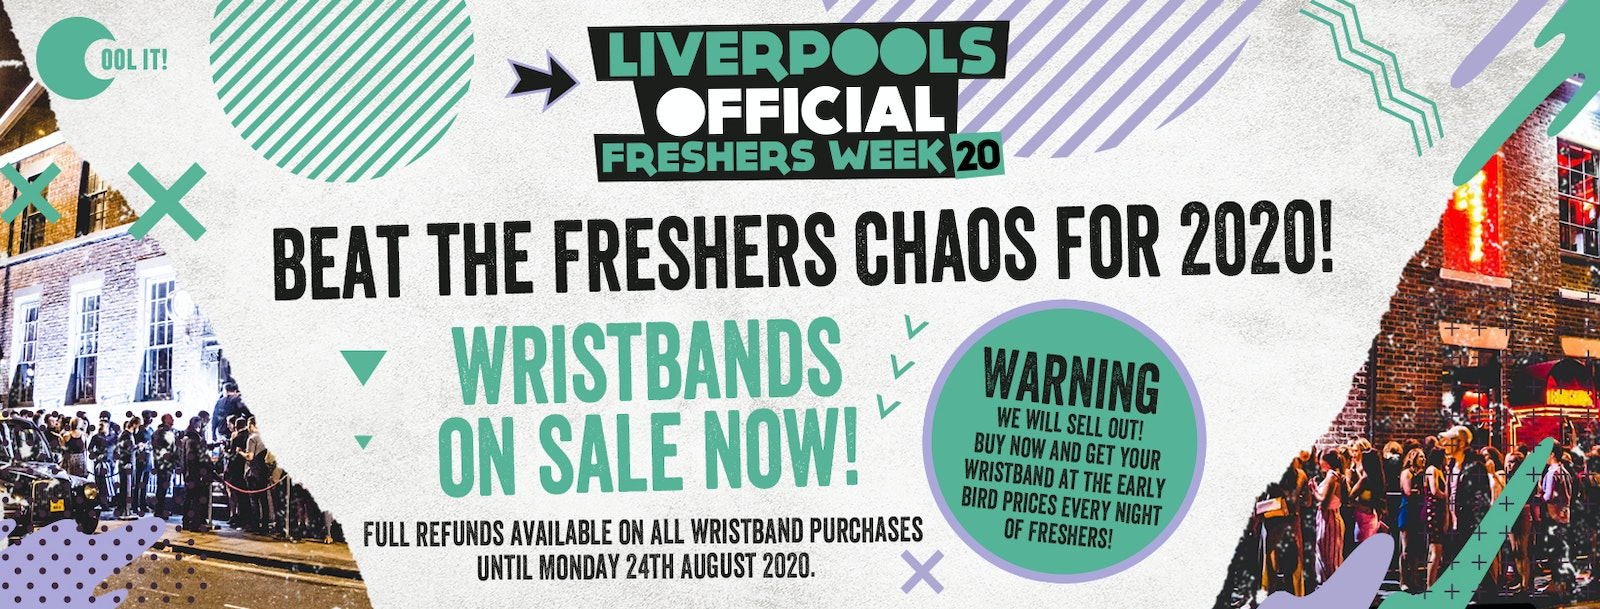 Liverpool's Official Freshers 2020 – Week 1 and Week 2